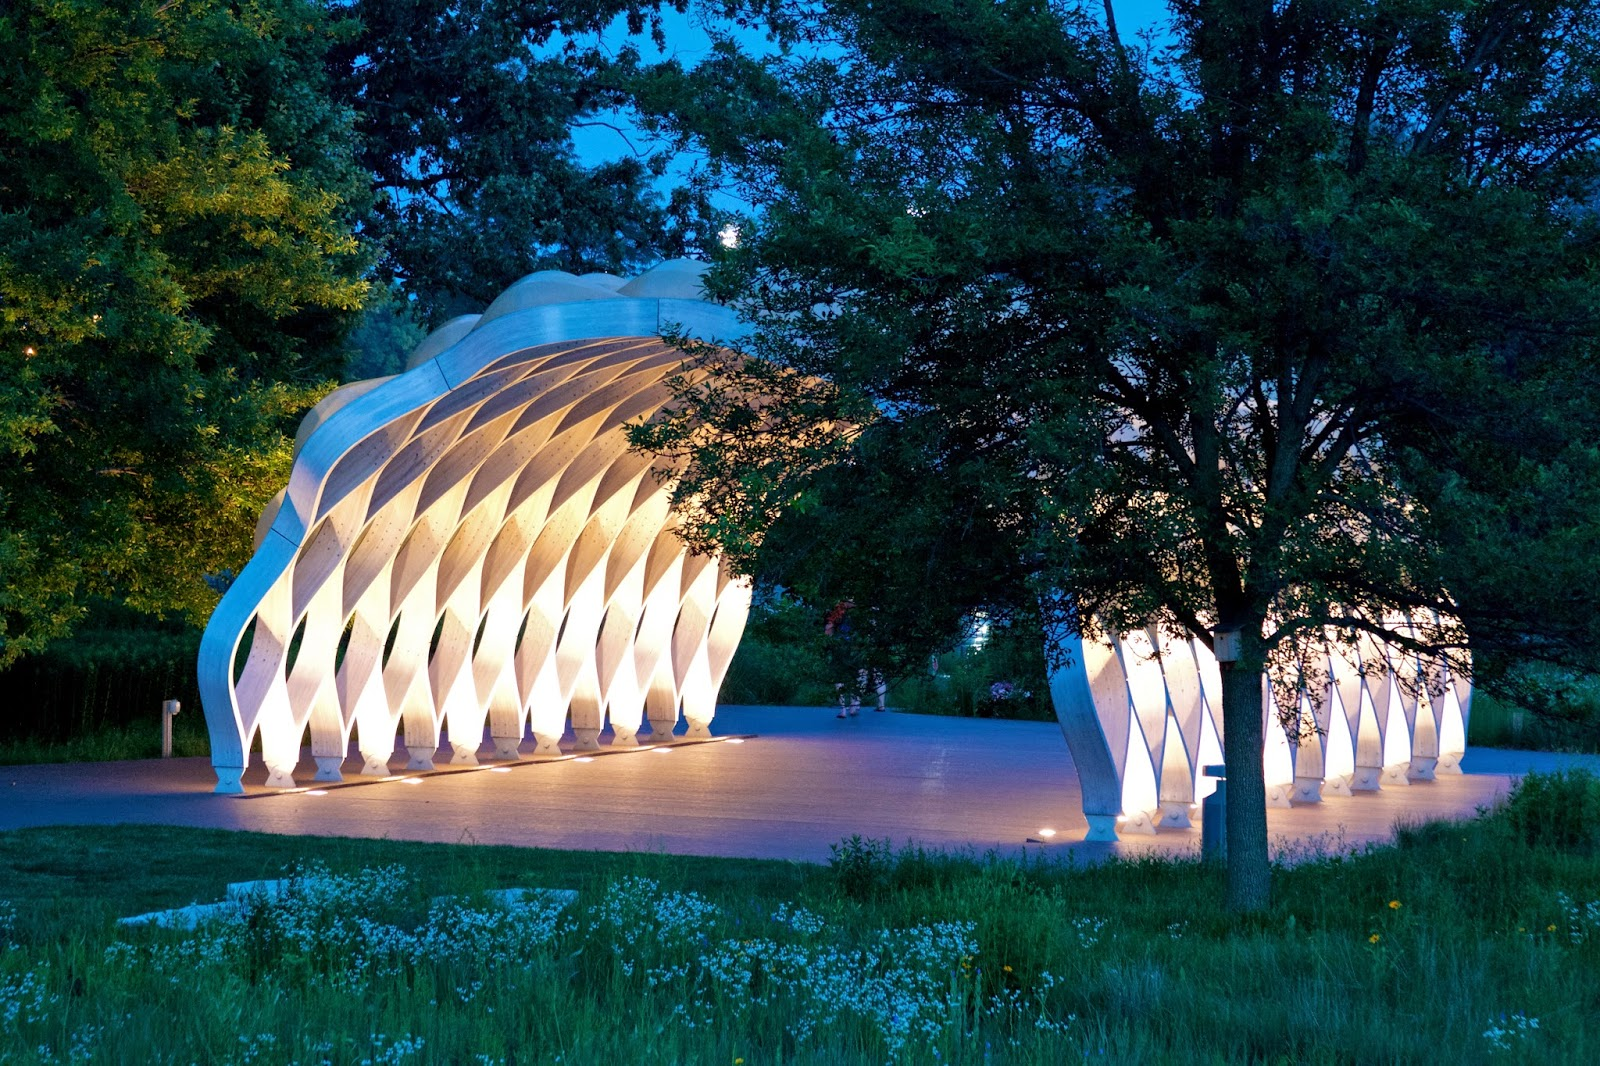 Chicago at night. Lincoln Park South Pond Pavilion. Photo by Tammy Sue Allen Photography.